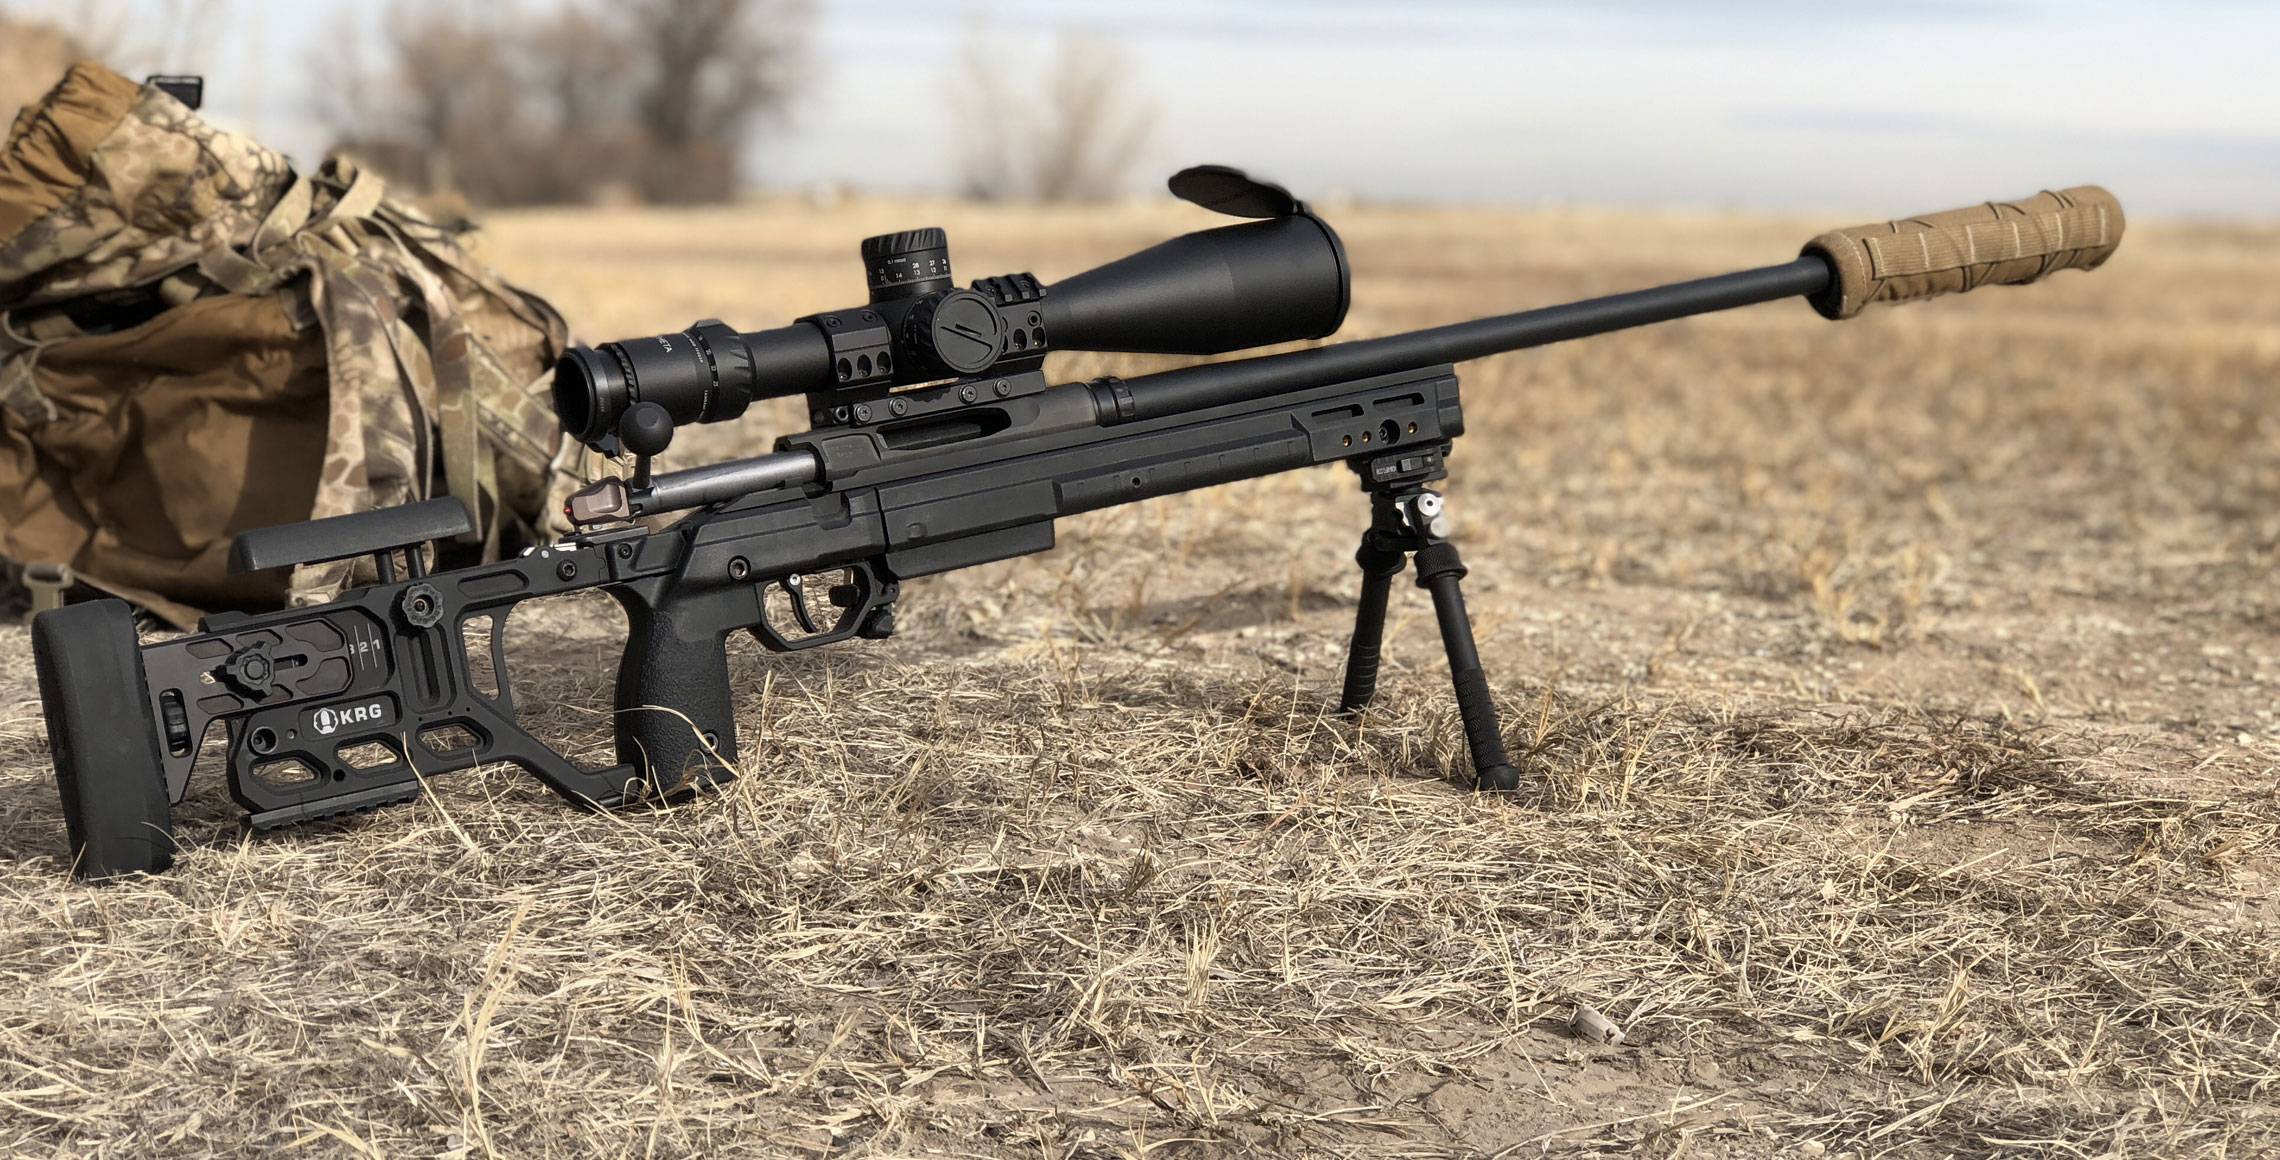 Benefits of a Chassis Stock